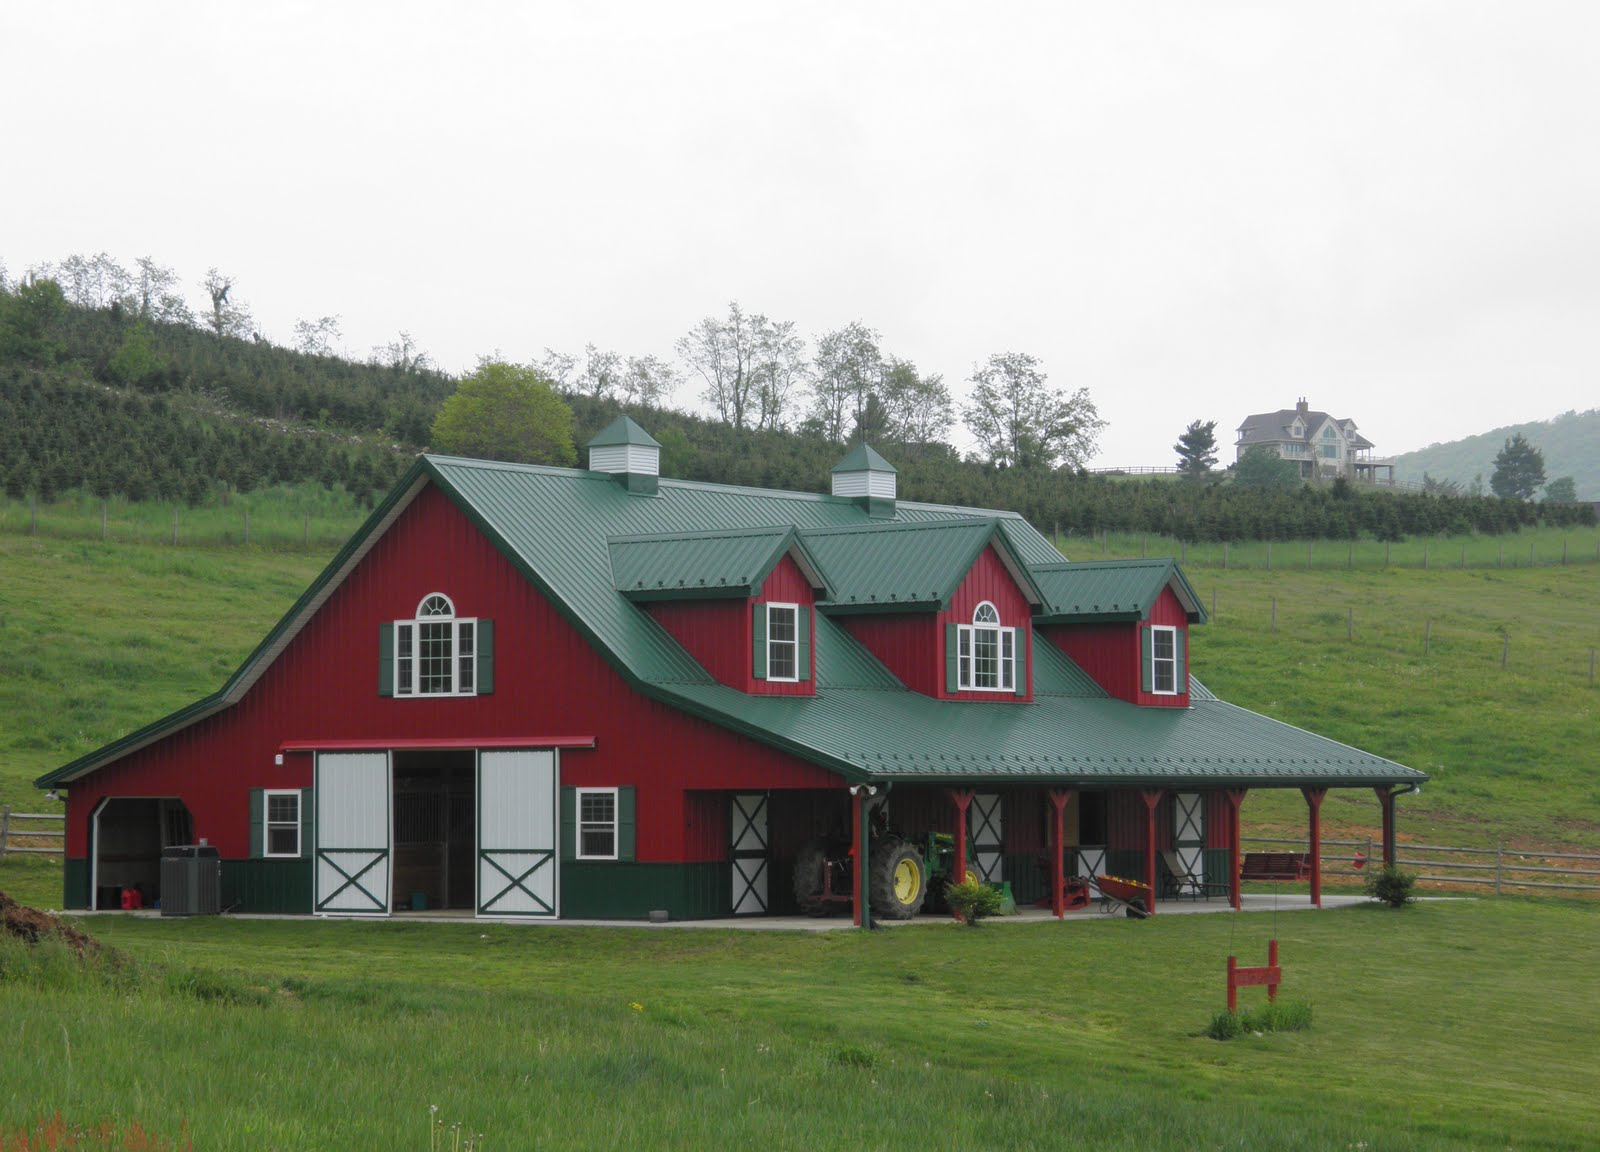 Barnhouse on pinterest barndominium barn houses and for Metal barn images